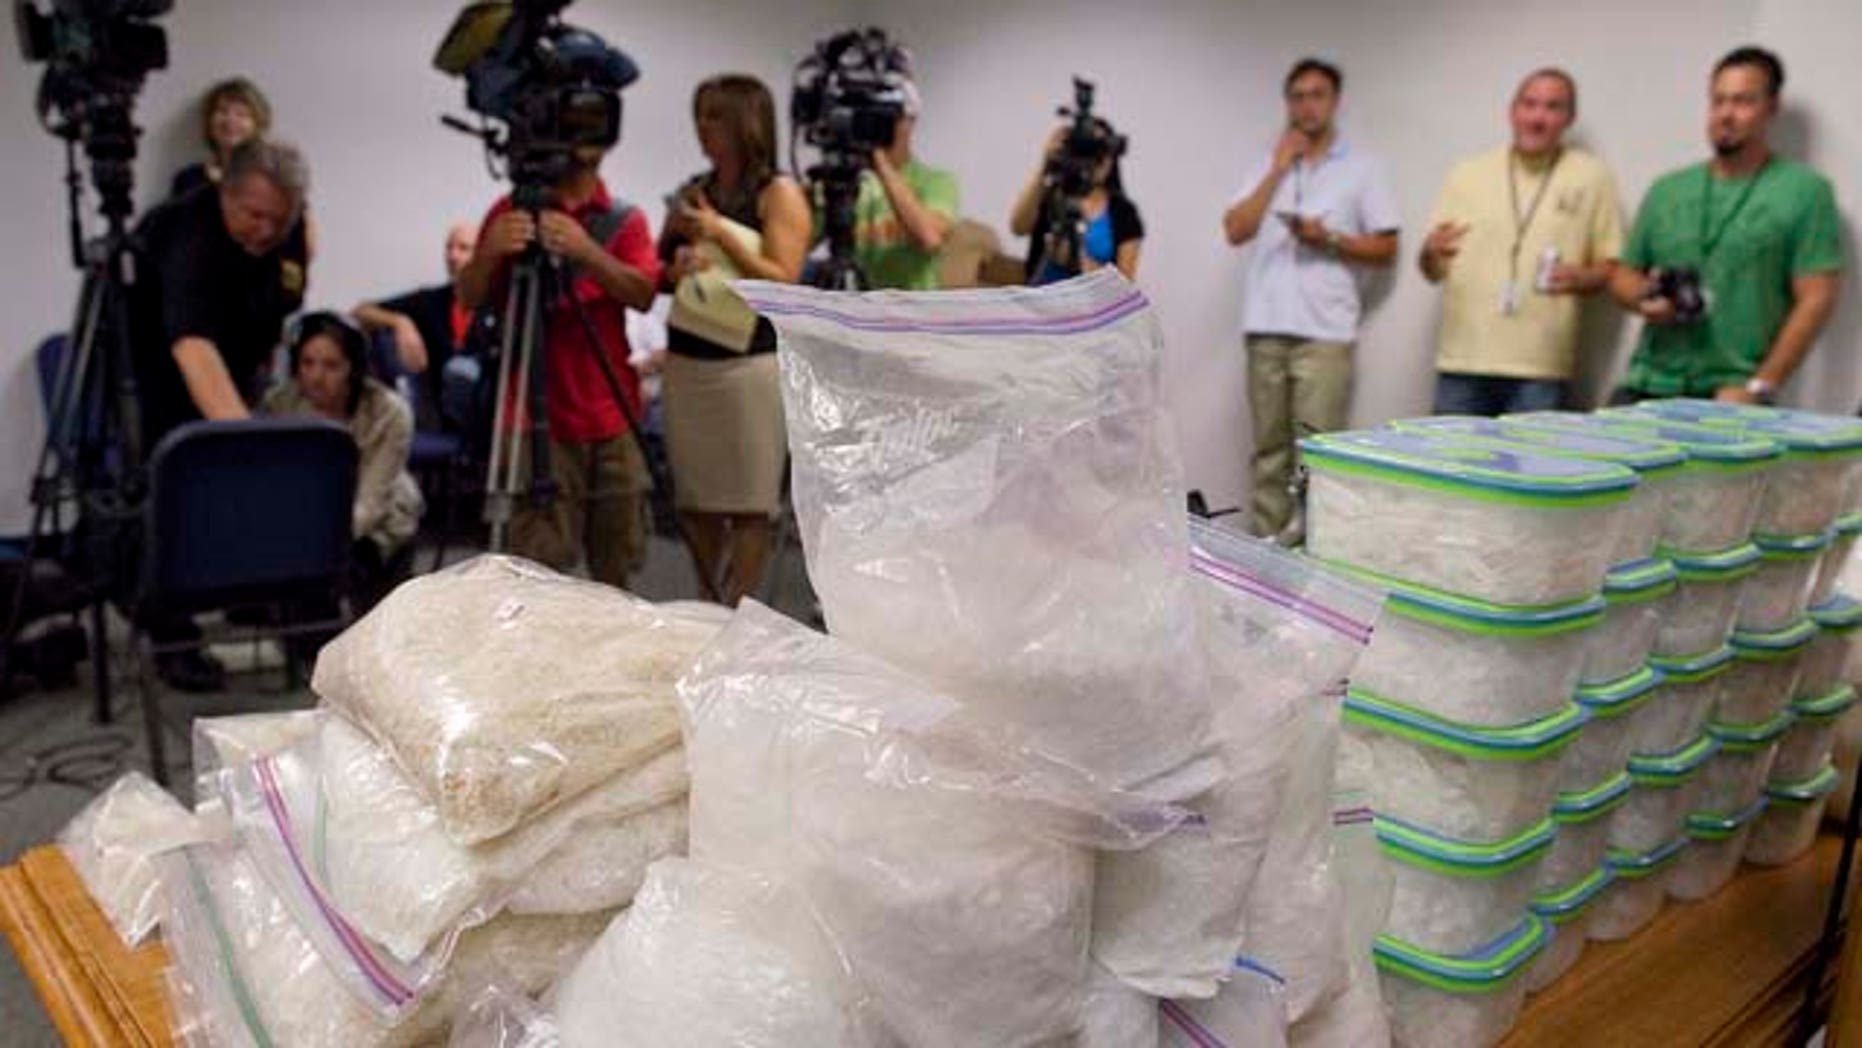 Containers of different forms of methamphetamine are displayed at a news conference announcing the state's largest meth bust in history, Thursday, July 14, 2011, in Las Vegas. Law enforcement agencies from Las Vegas, Henderson and Boulder City seized 200 pounds of the drug earlier in the week. (AP Photo/Julie Jacobson)